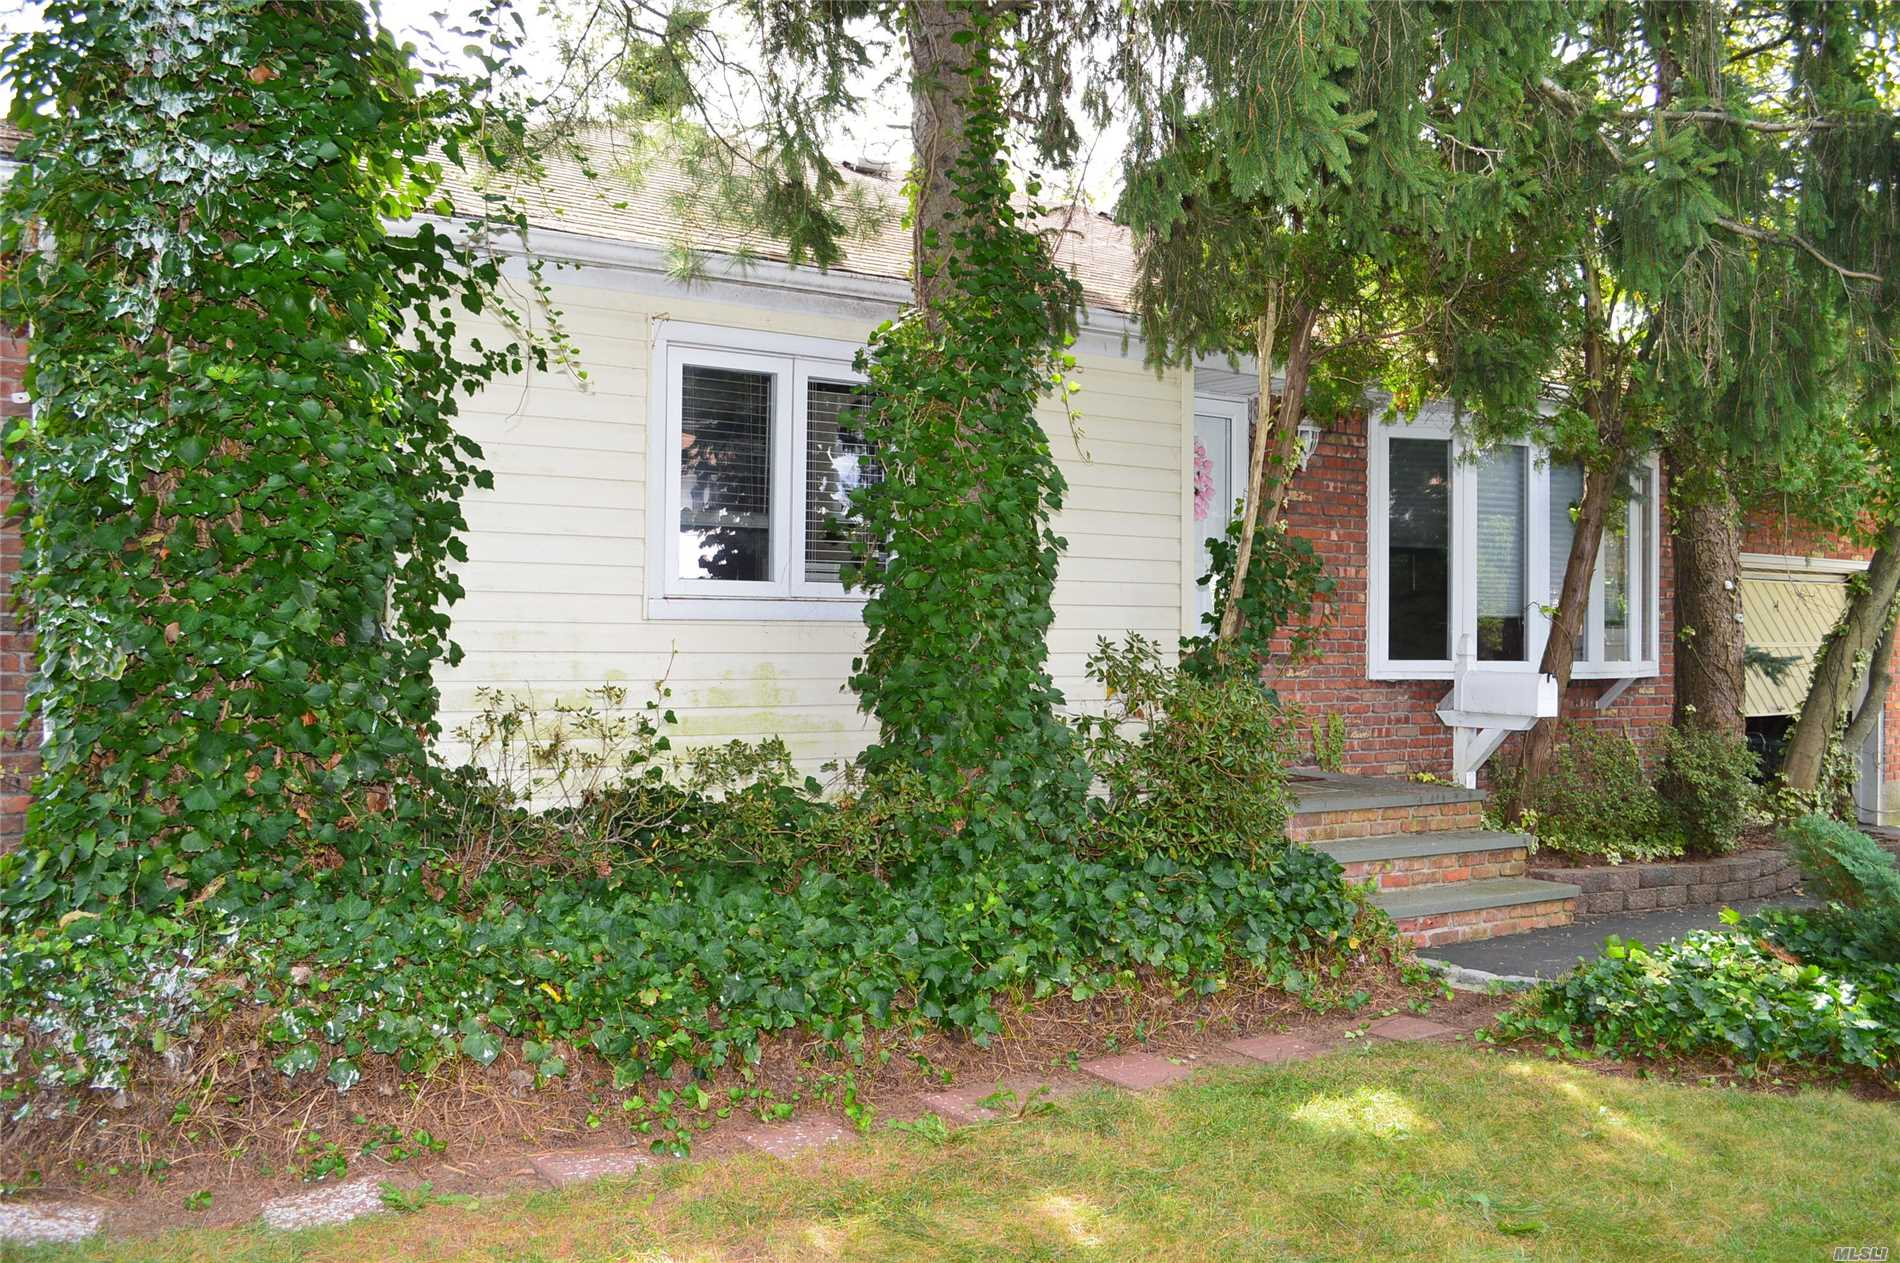 Very Clean Ranch In Great Area. Full Basement, Garage & Nice Yard. Need For Updating Reflexed In Asking Price.